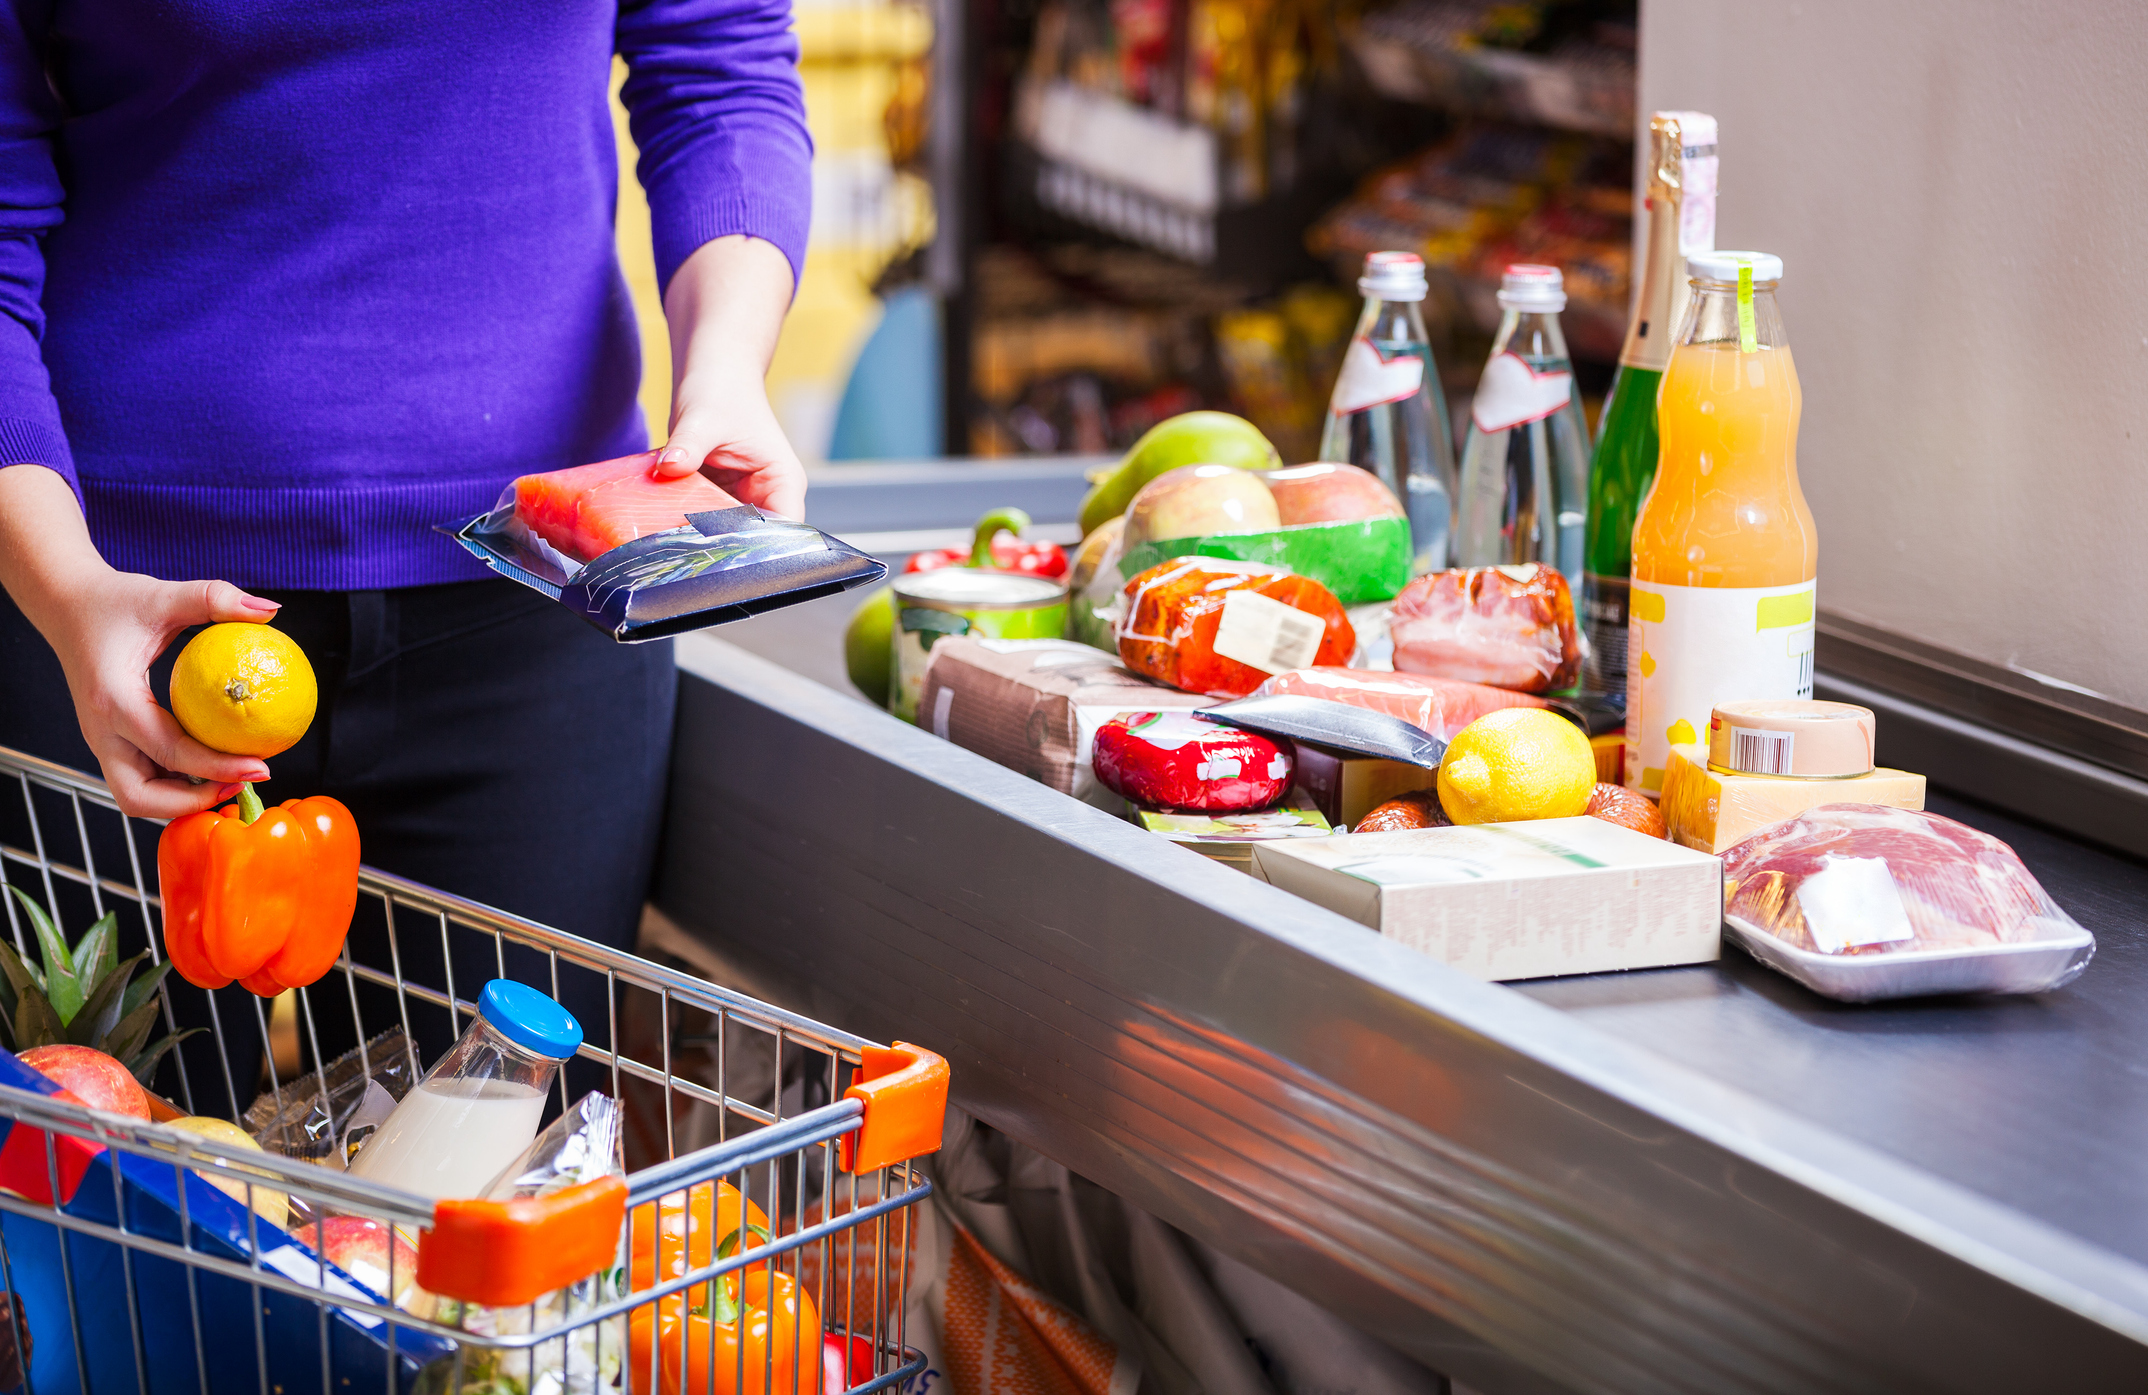 Food & Beverage - Our Food & Beverage case studies deal with both driving in-store sales AND Direct to Consumer Online Purchase.Campaigns have reached 1MM+ while engaging 500k+.